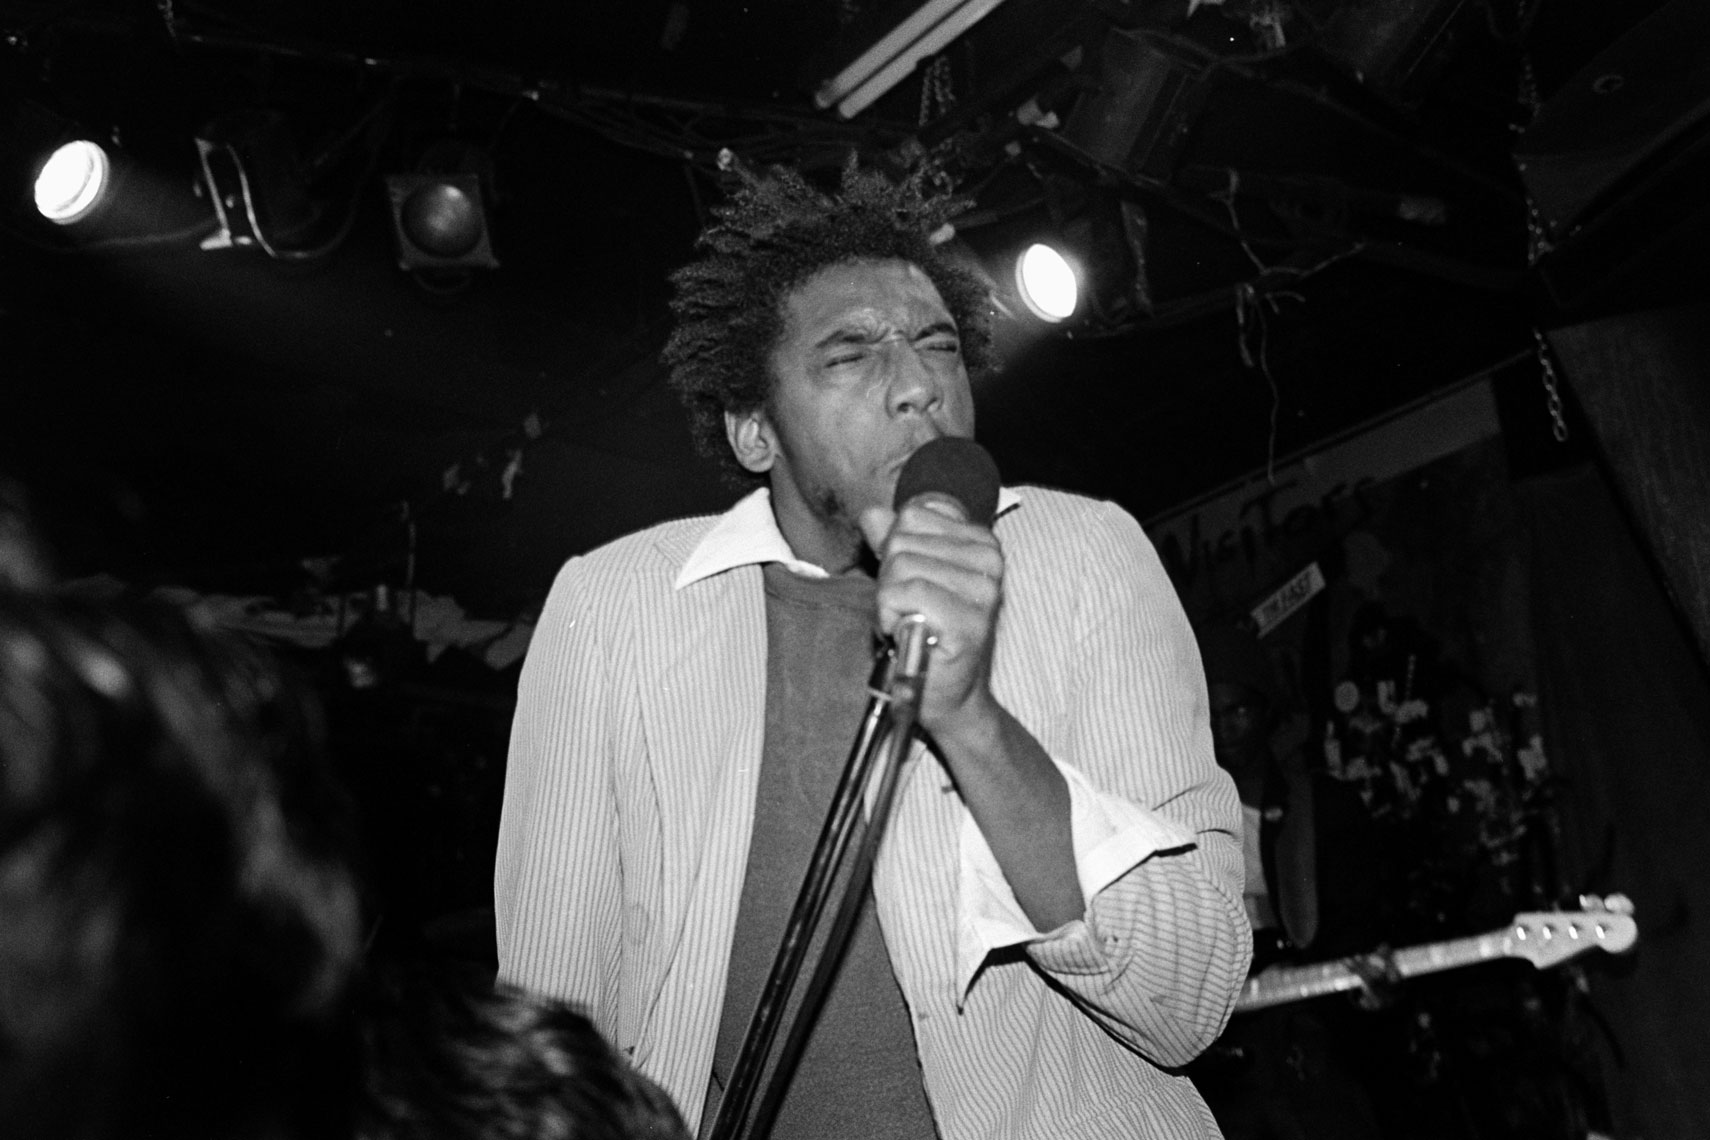 008_008_Bad_Brains_Irving_Plaza